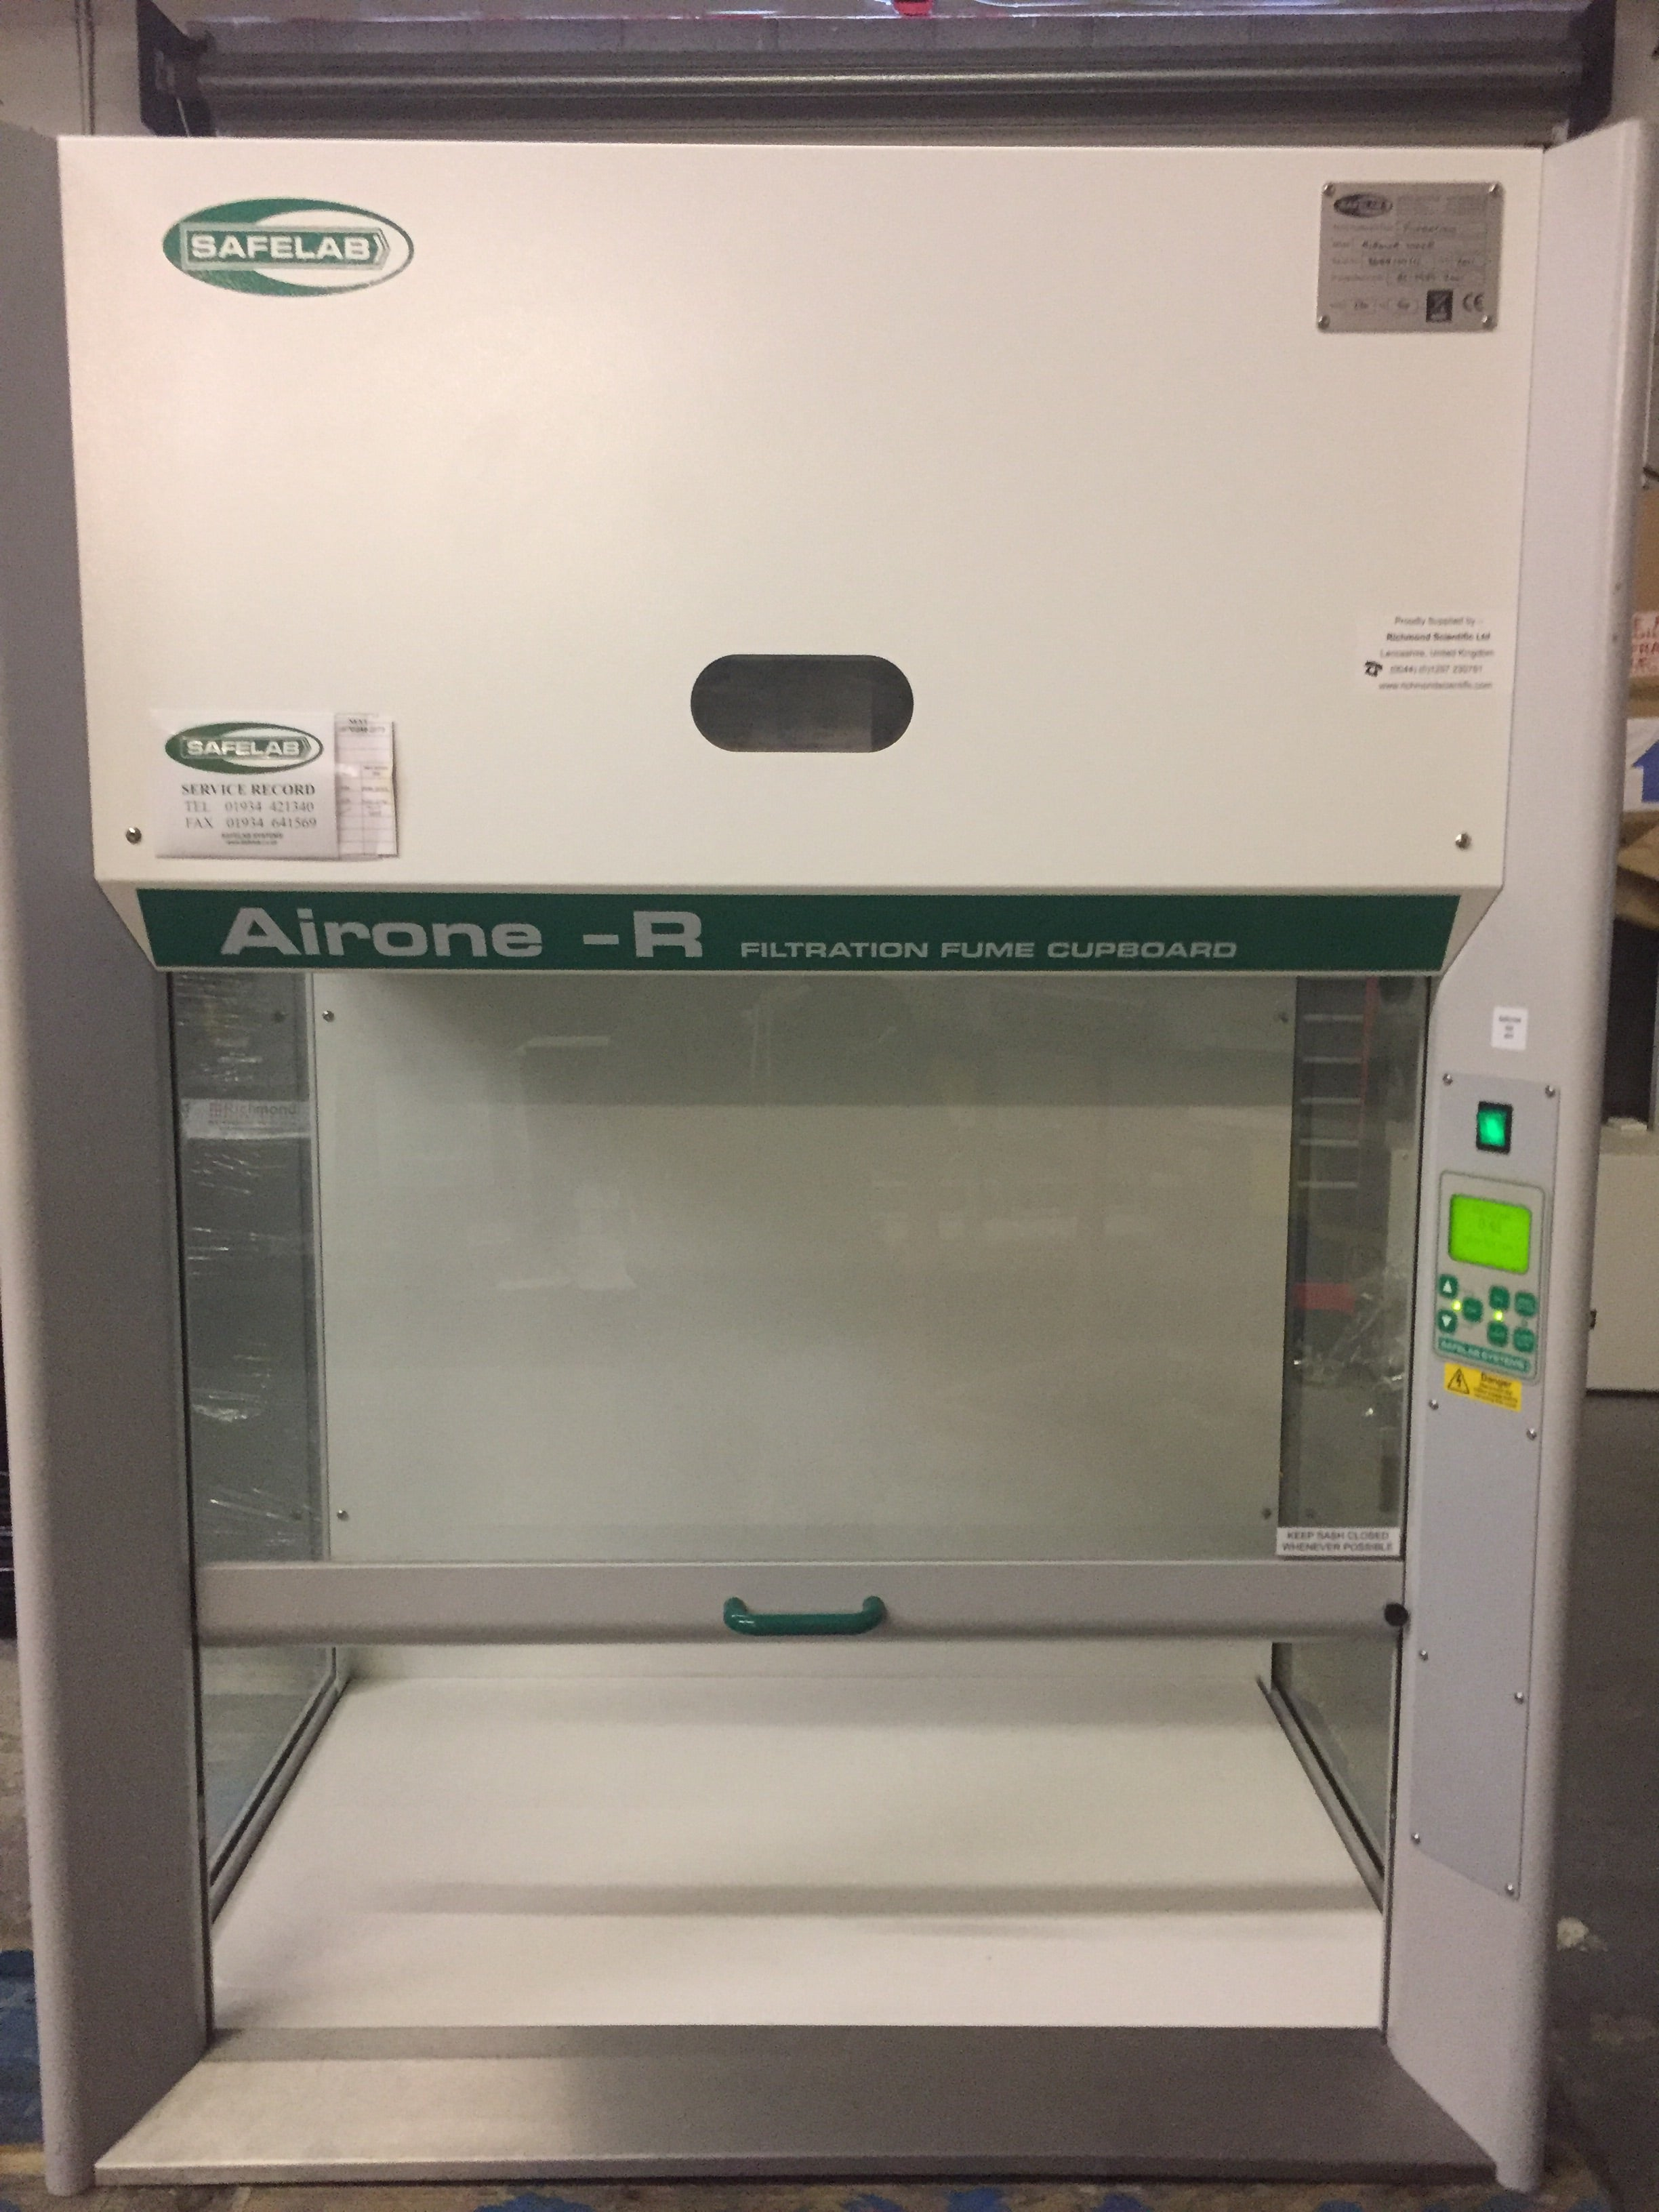 Airone - R 1000 Filtration Fume Cupboard